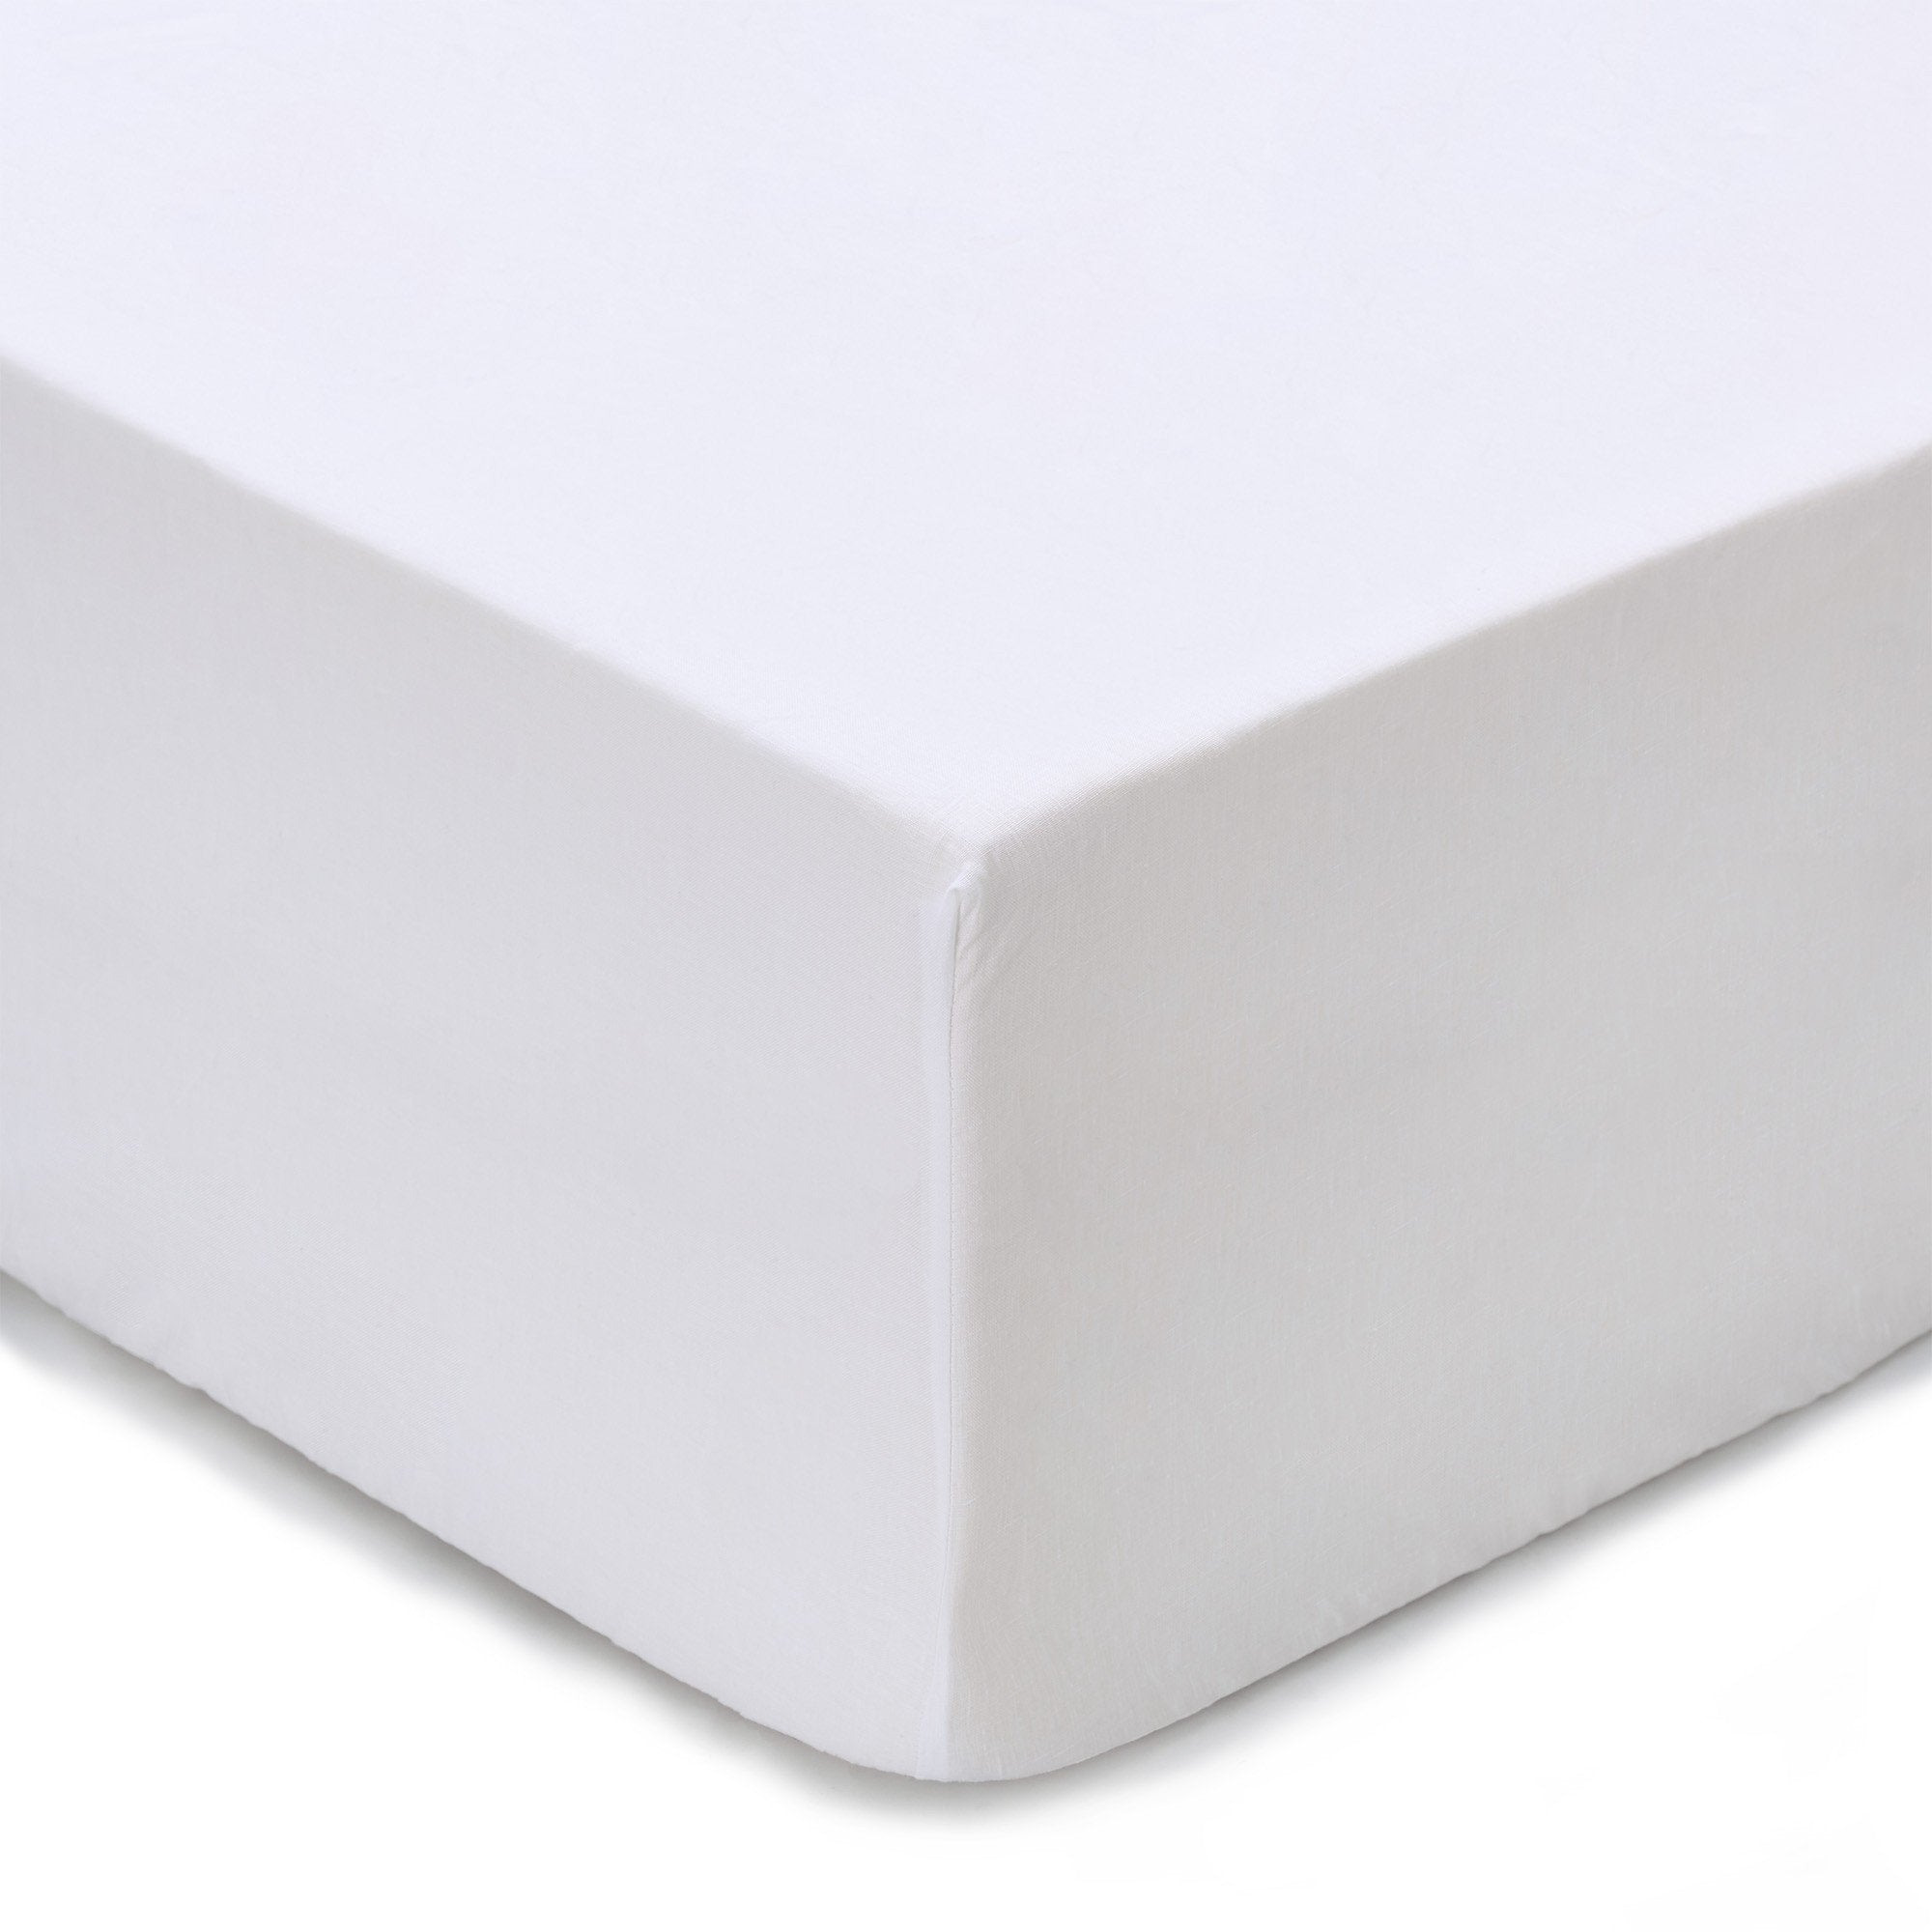 Toulon fitted sheet, white, 100% linen